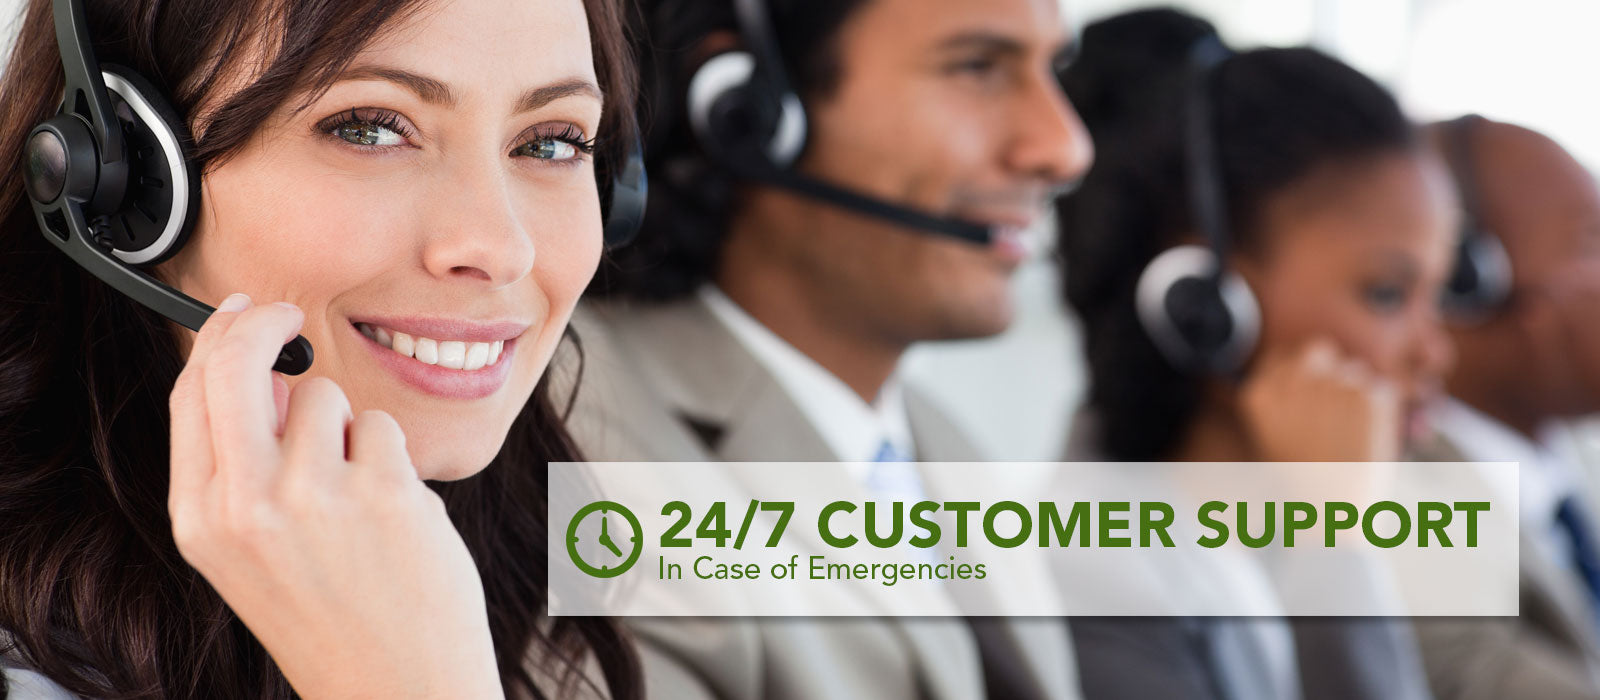 24/7 Customer Support In Case of Emergencies